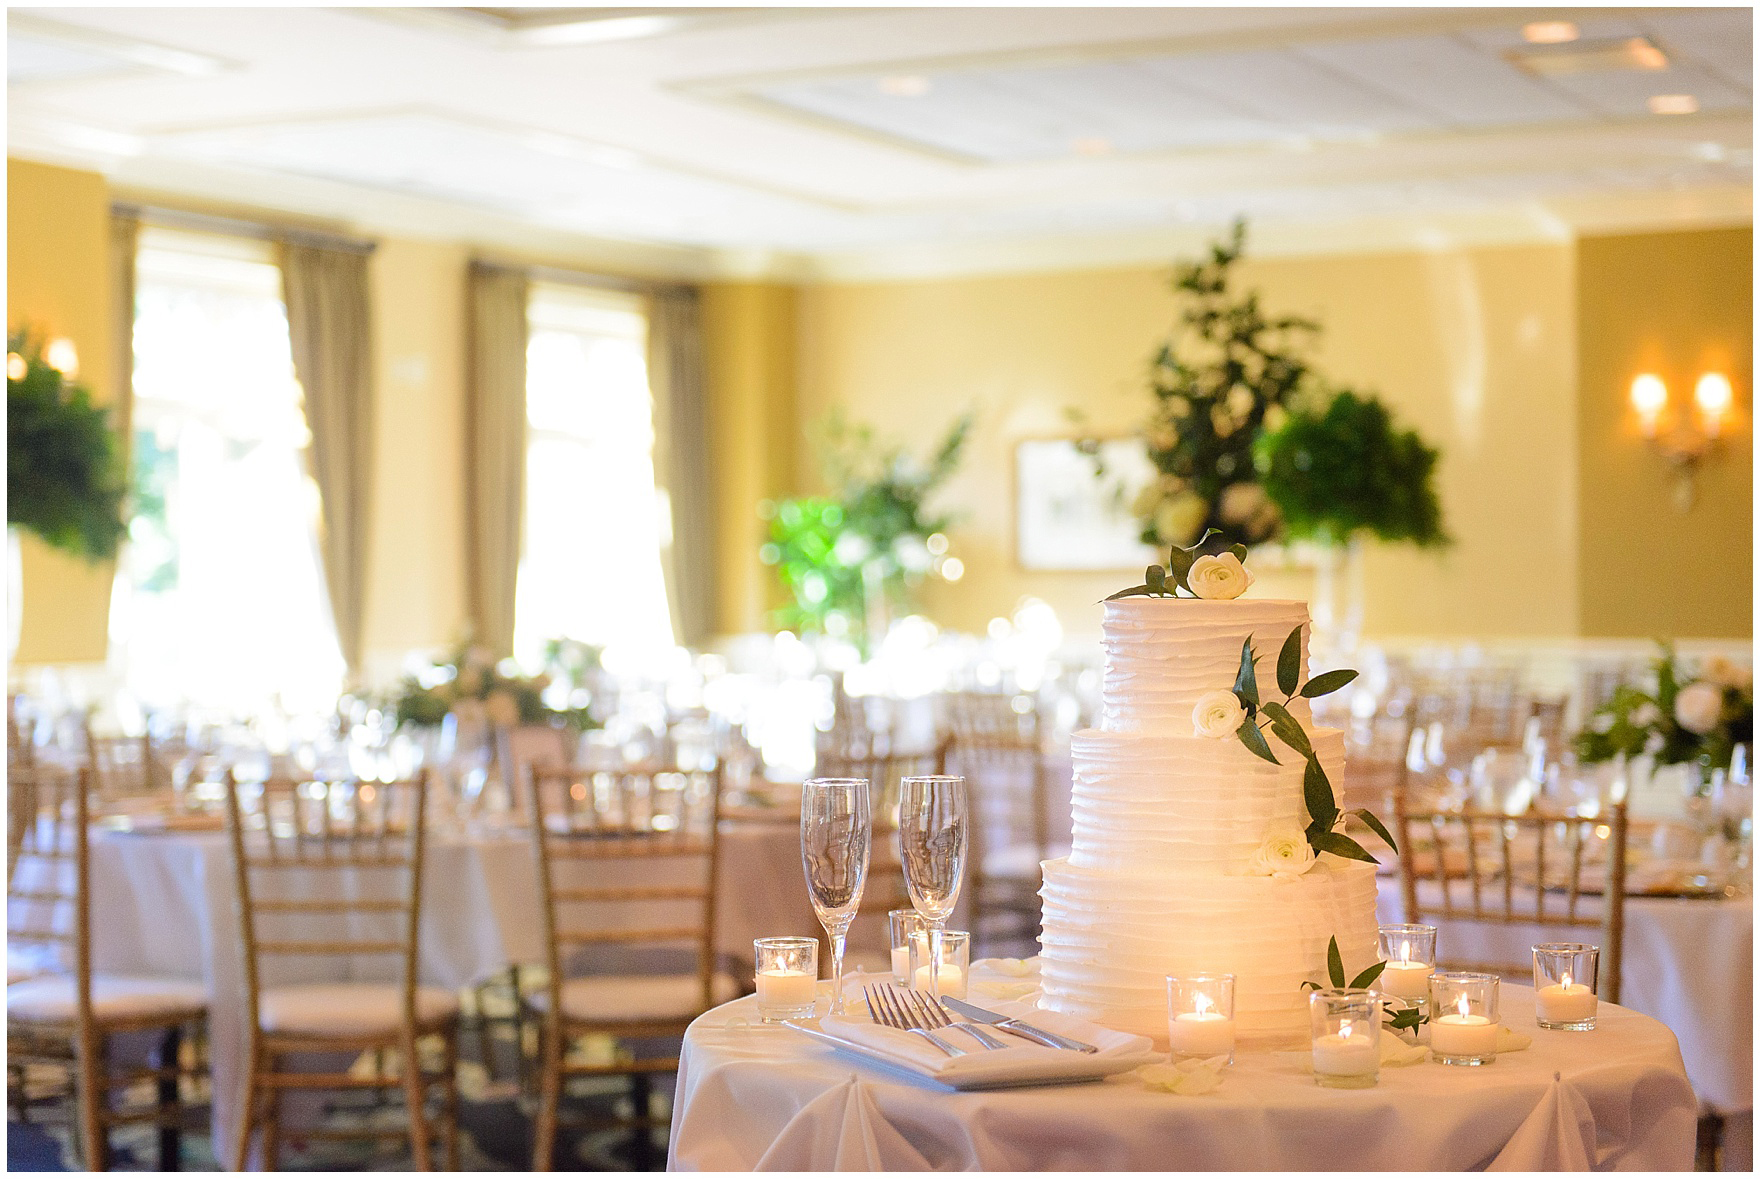 A cake by Toni Patisserie is displayed during a Butterfield Country Club wedding.